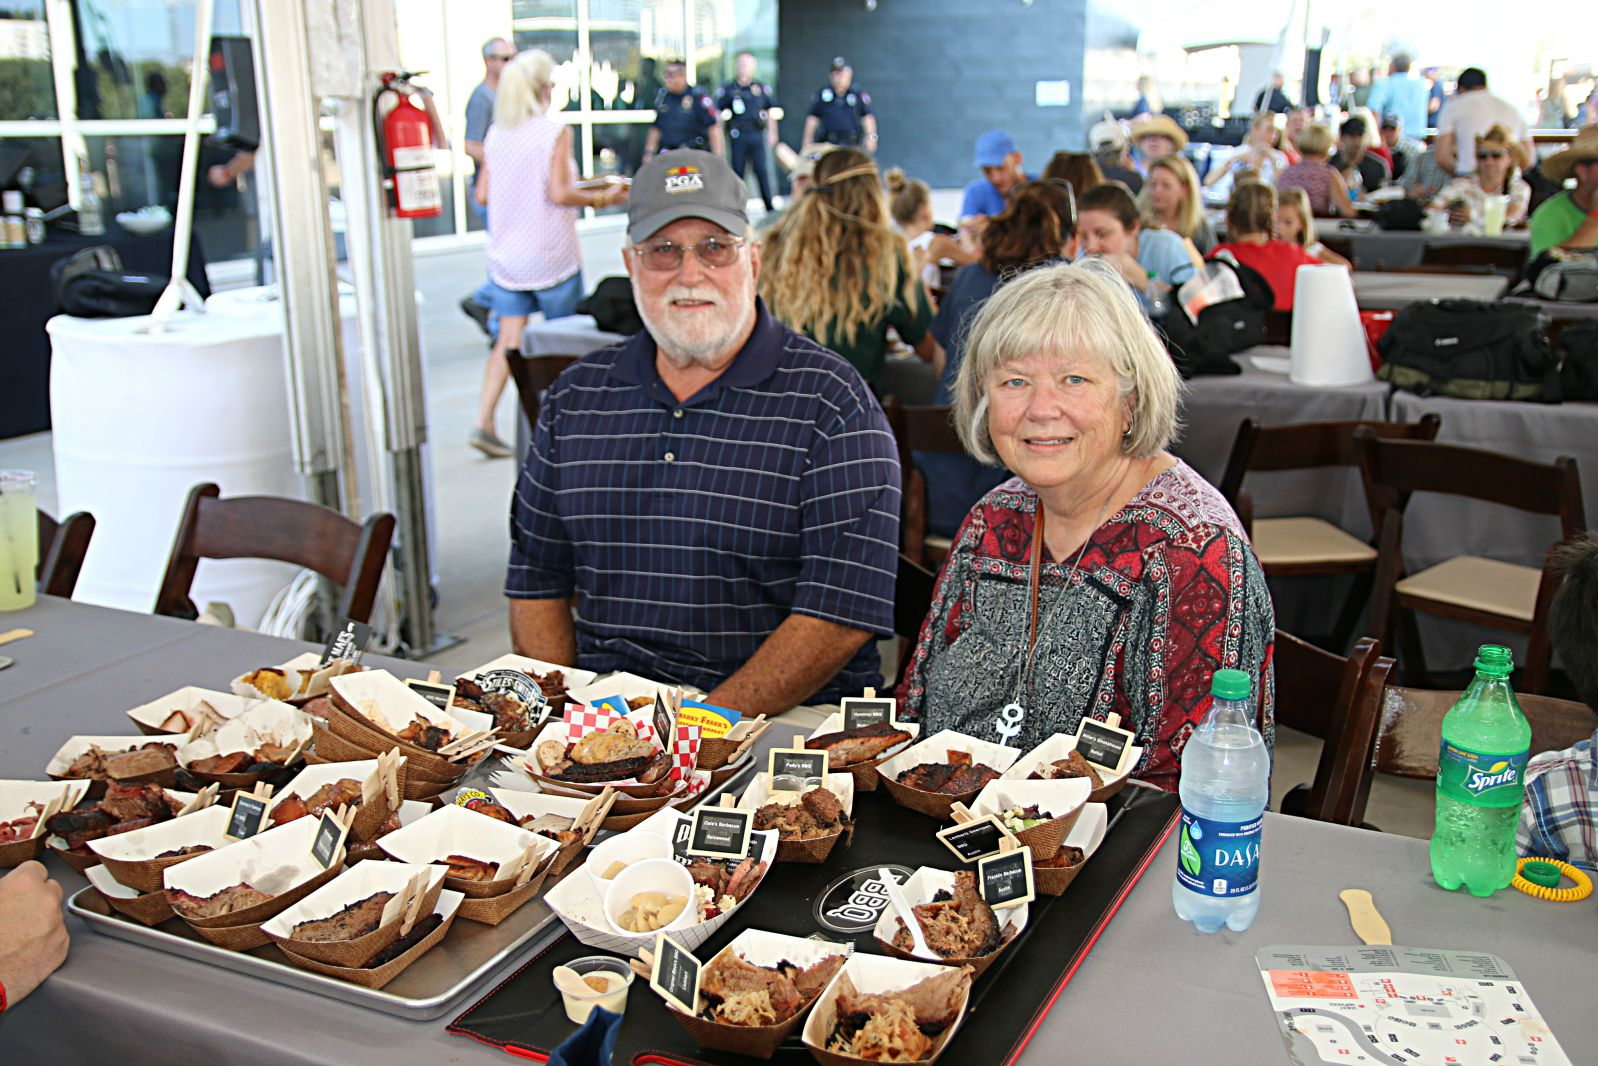 Ron & Judy Bell along with Lauren & Blake Jordan (not pictured) brought a custom tray and pre-made labels for every barbecue booth at Texas Monthly BBQ Fest 2016